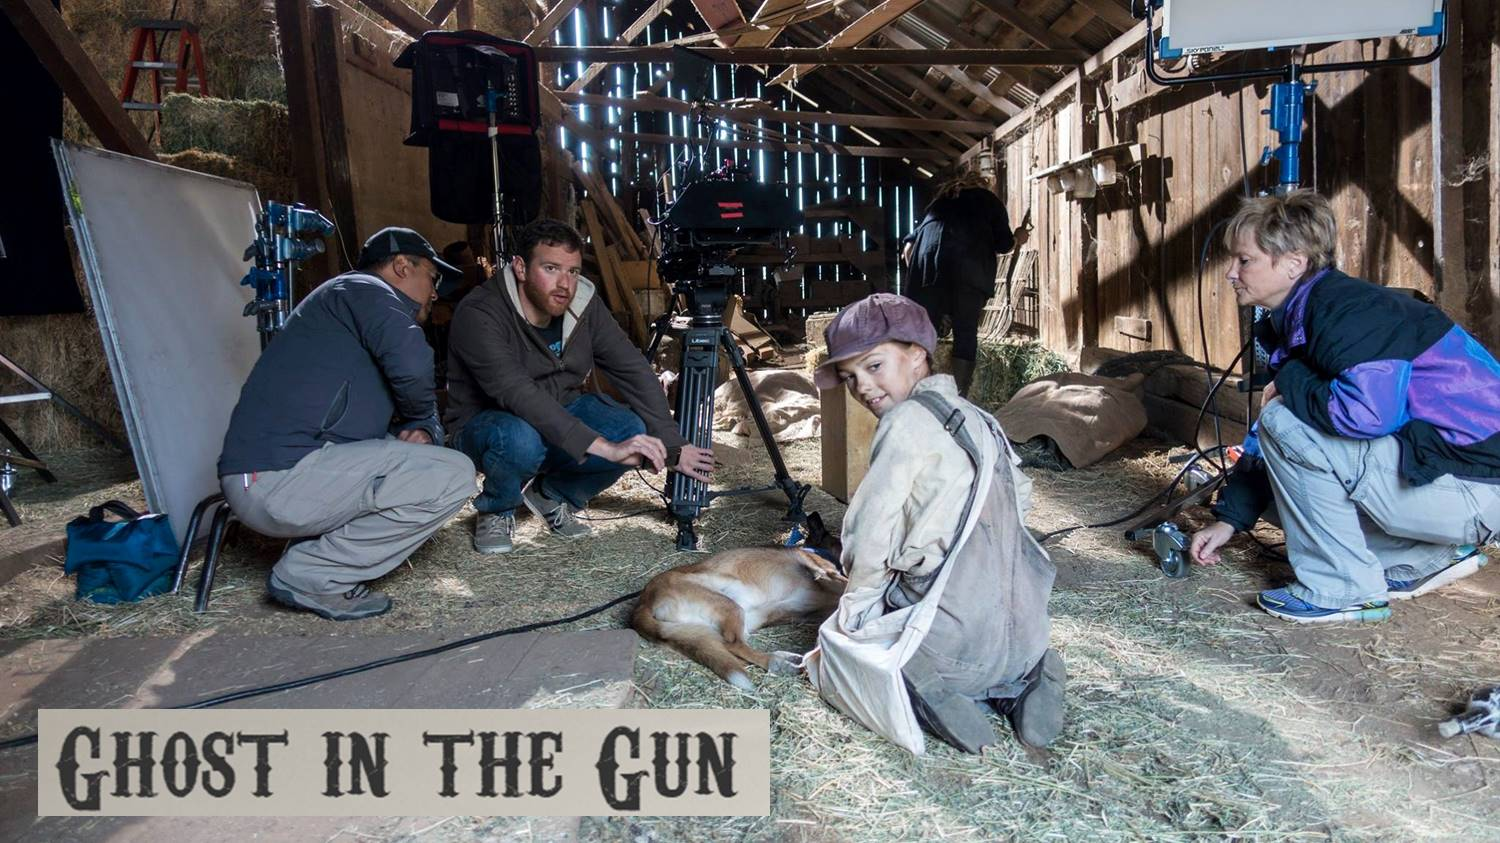 ghost in the gun The Pooch Coach dog trainer